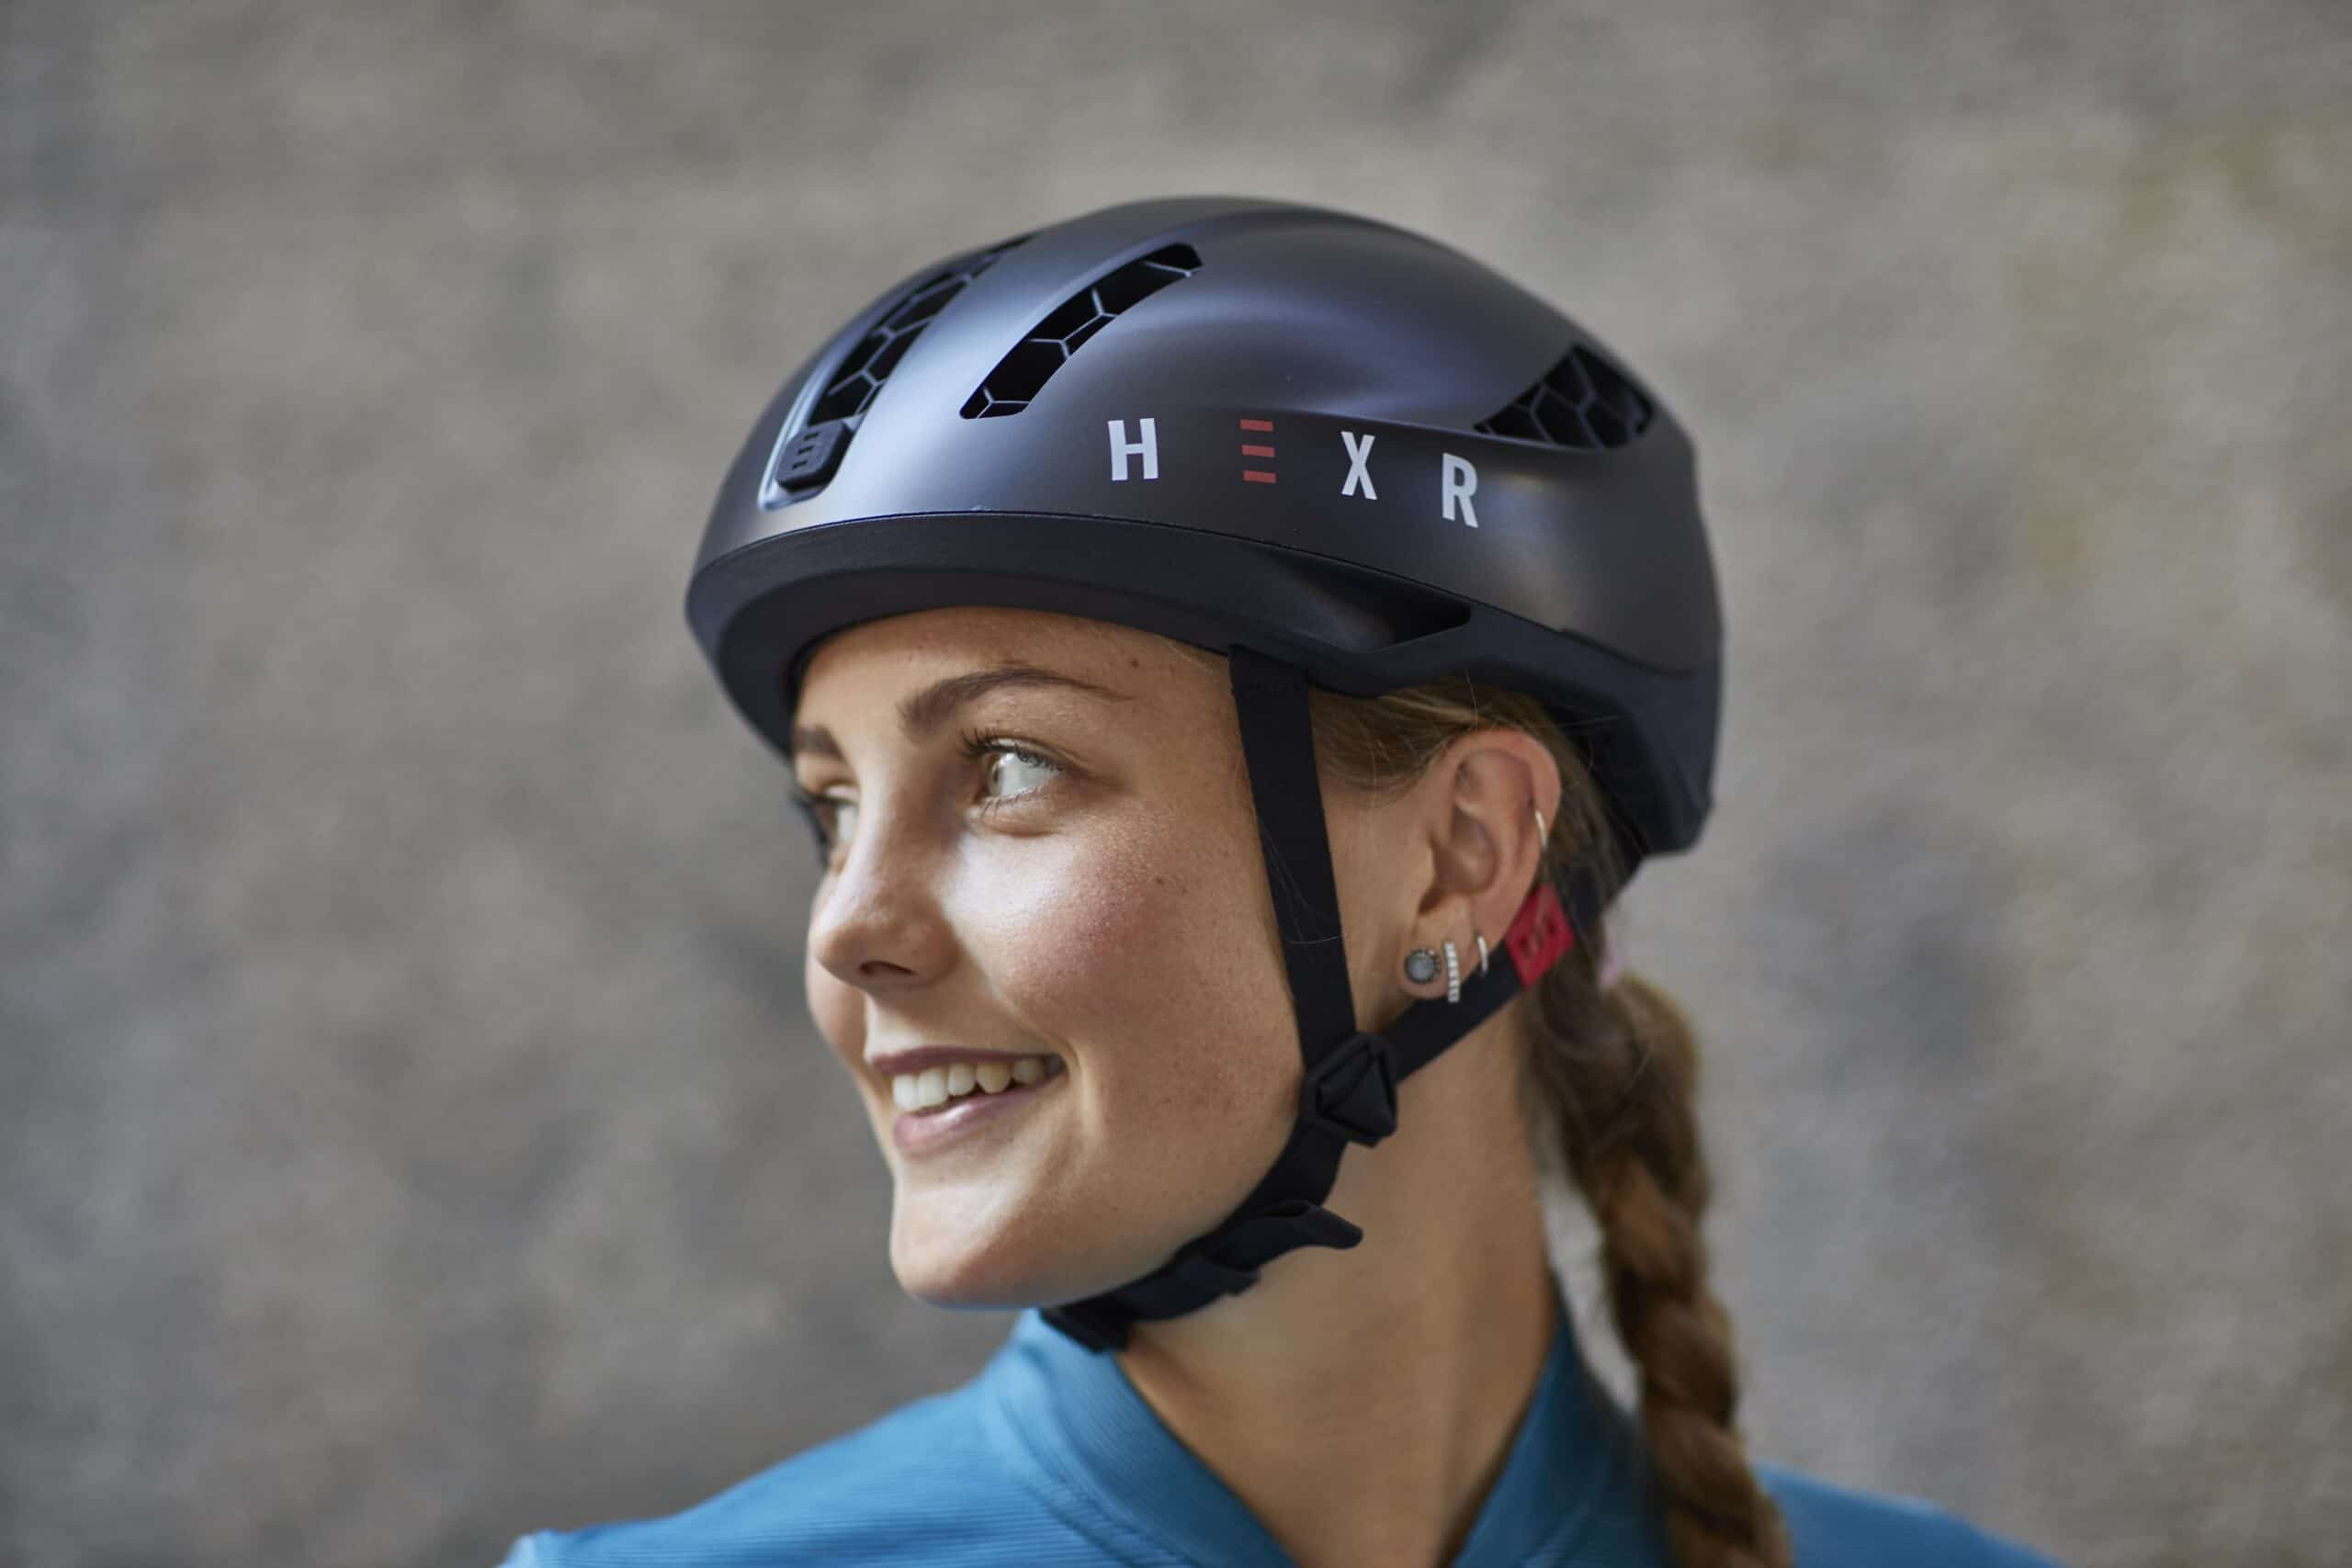 Get Fitted For A Bespoke Cycling Helmet From The Comfort Of Your Own Home With HEXR